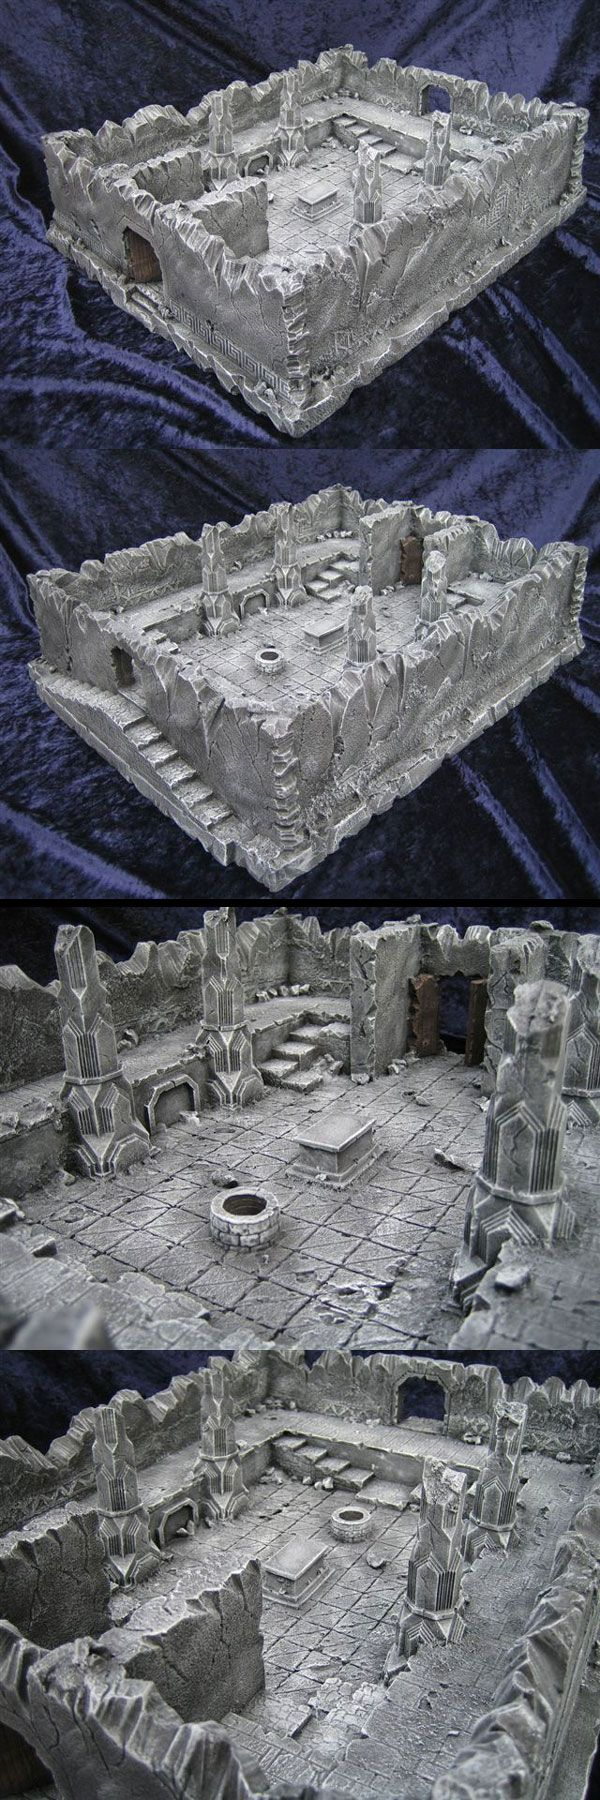 Balins Tomb minis miniatures terrain foam wargaming resource tool how to tutorial instructions | Create your own roleplaying game material w/ RPG Bard: www.rpgbard.com | Writing inspiration for Dungeons and Dragons DND D&D Pathfinder PFRPG Warhammer 40k Star Wars Shadowrun Call of Cthulhu Lord of the Rings LoTR + d20 fantasy science fiction scifi horror design | Not Trusty Sword art: click artwork for source